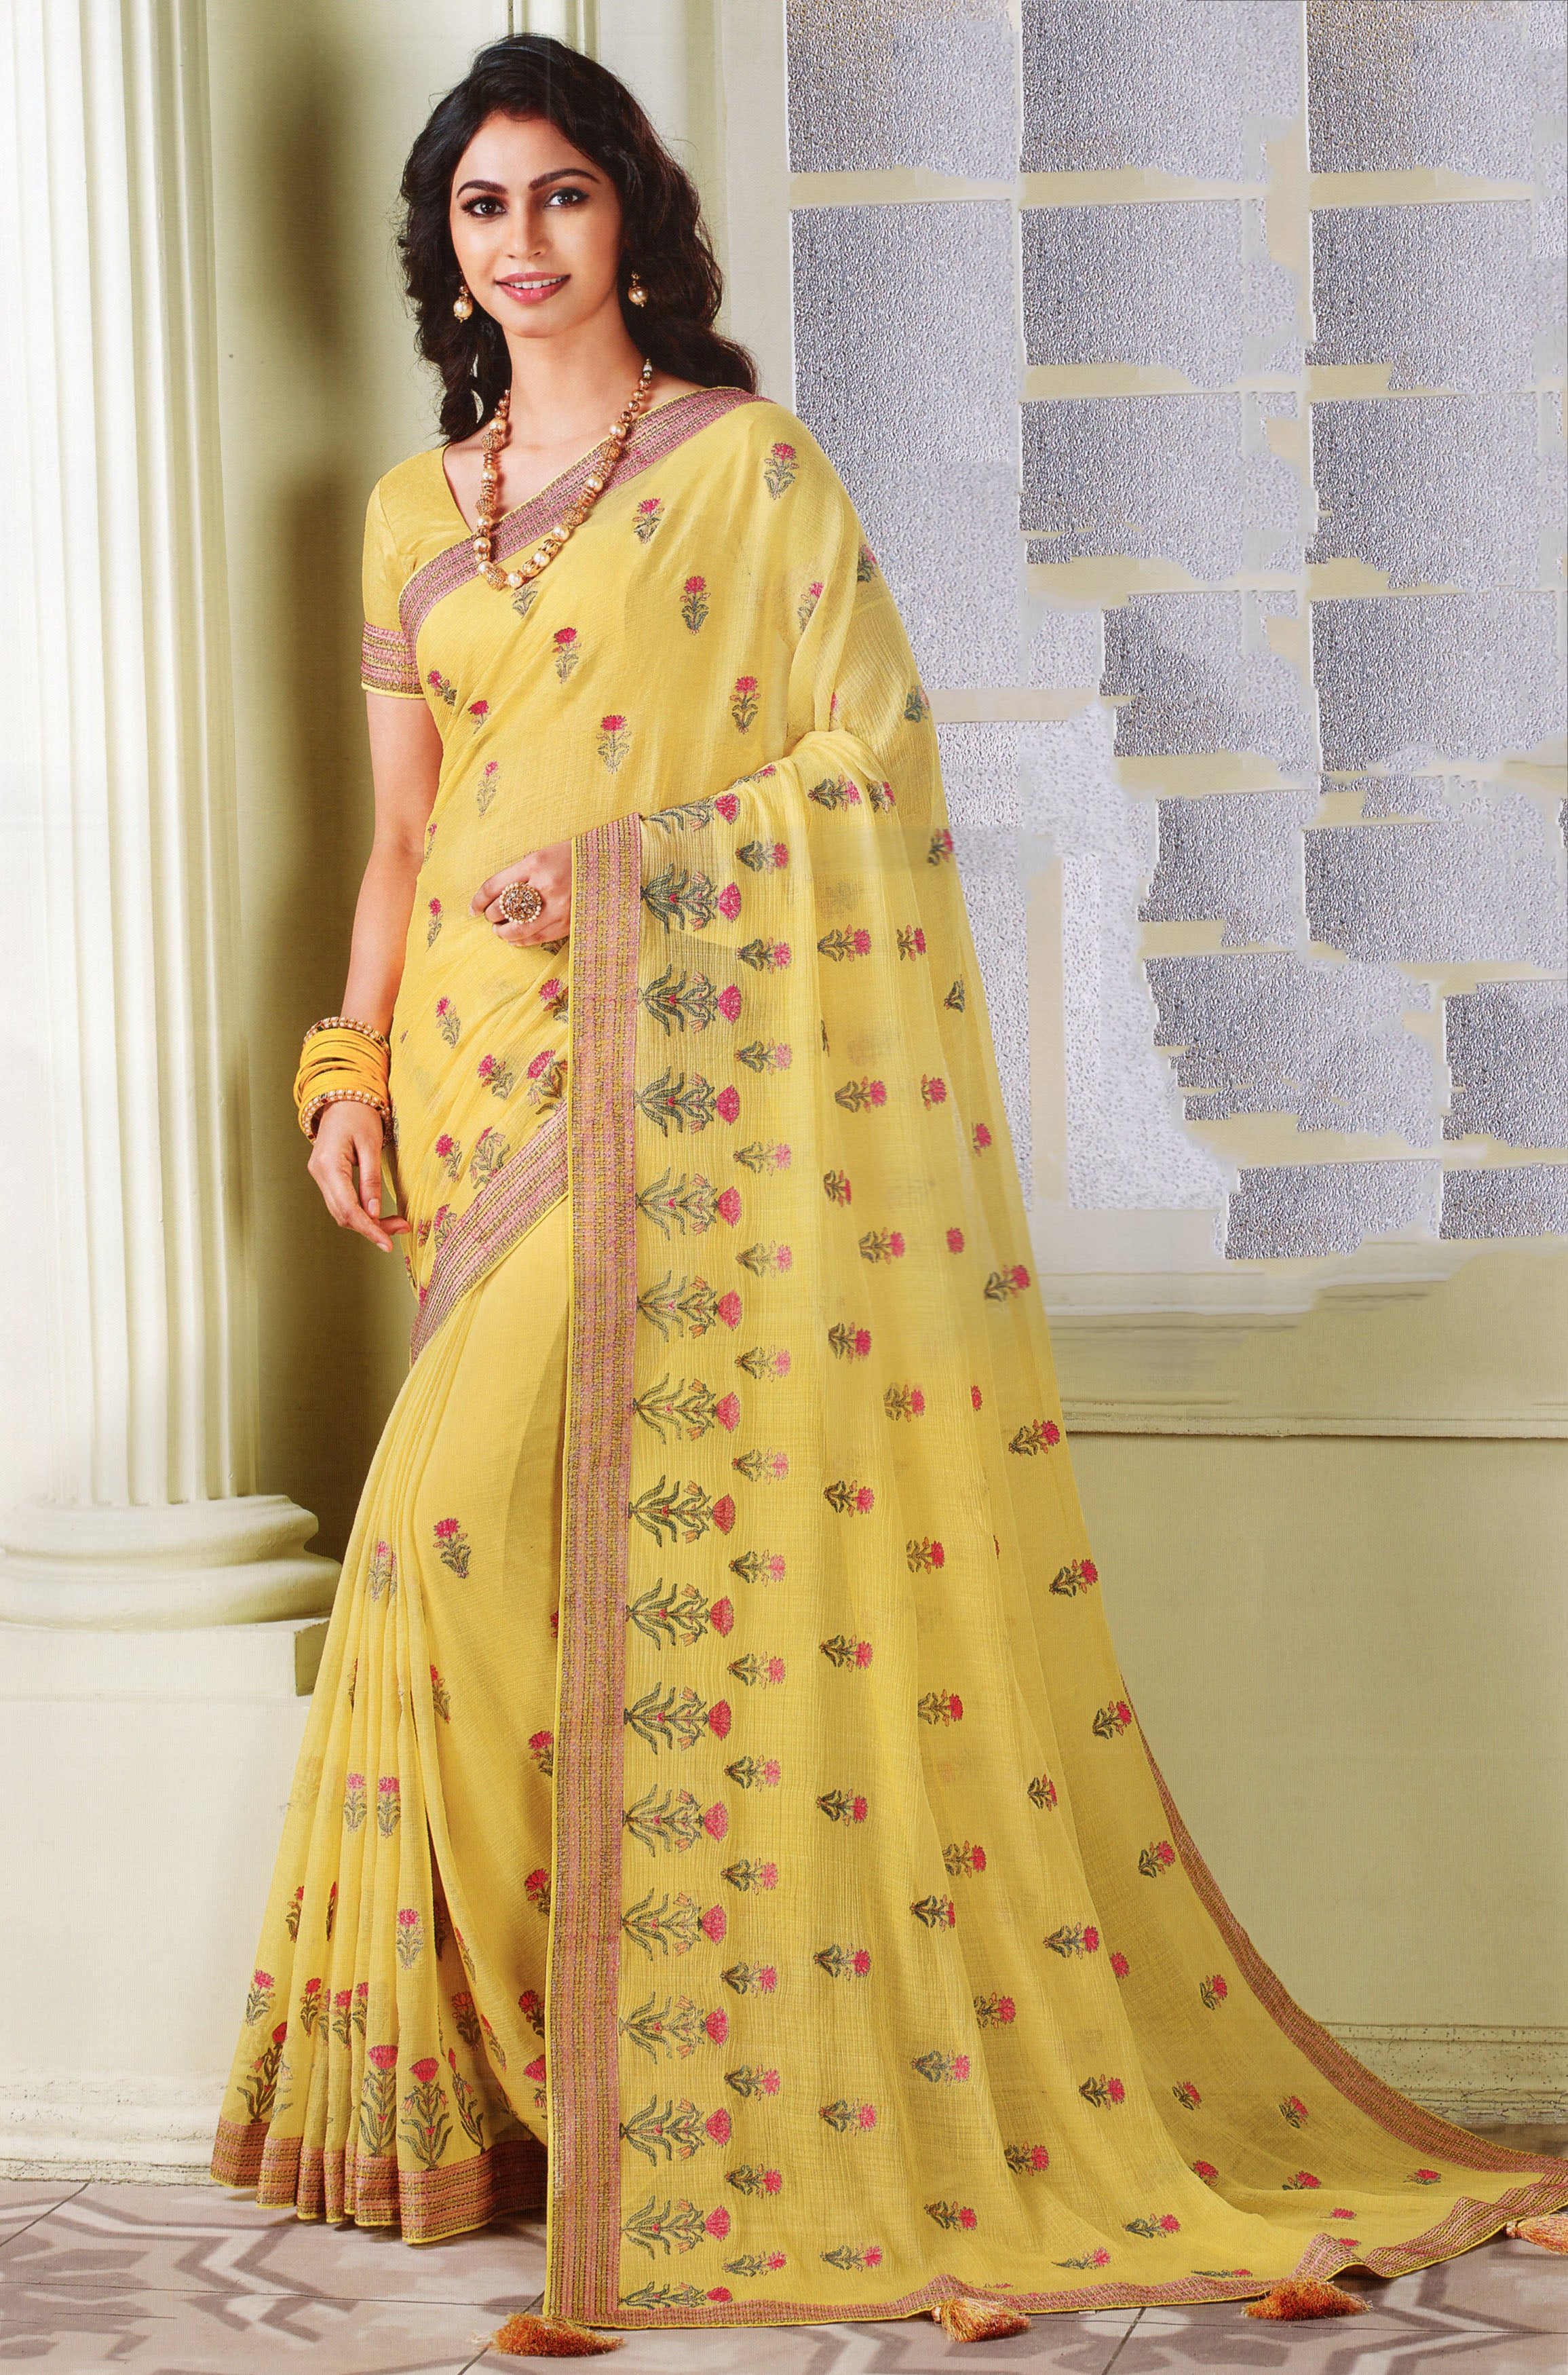 Laxmipati Cham Cham Embroidered  Chiffon  Saree With Blouse Piece  (Yellow) By Indians Boutique